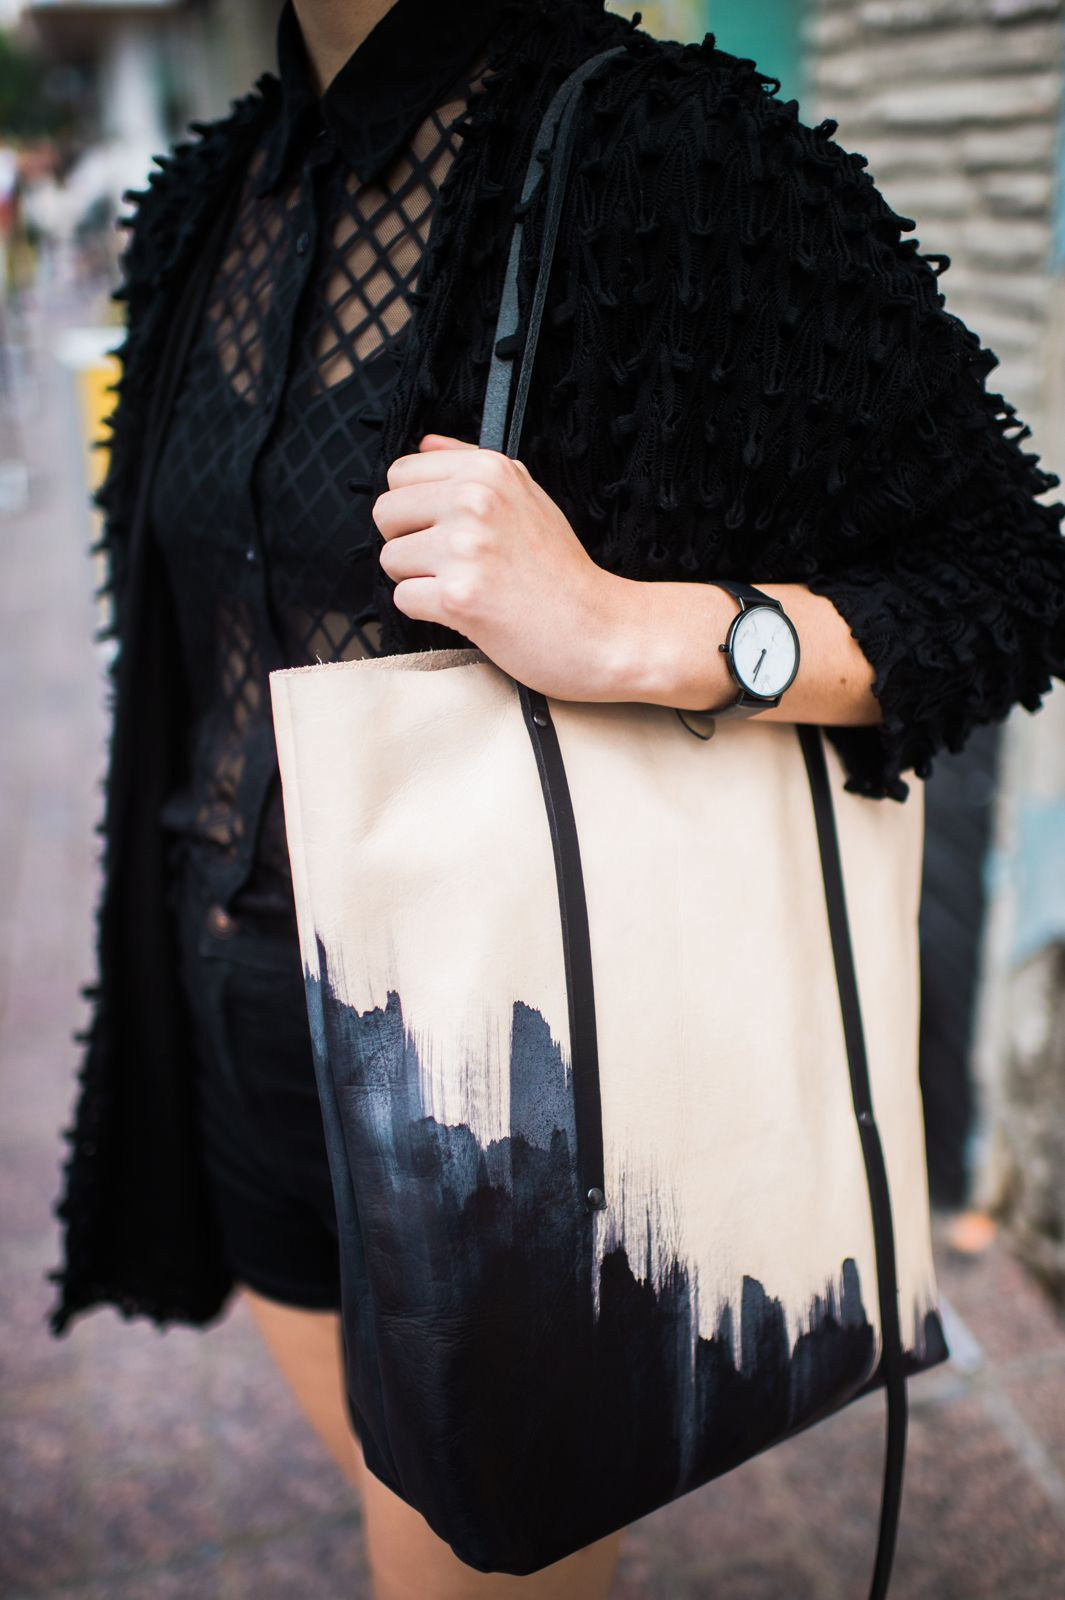 f86223797d73 30 Awesome Outfit Ideas Straight Out Of SXSW  refinery29  http   www.refinery29.com 2016 03 106504 sxsw-street-style-photos-2016 slide-19  Even if you only ...